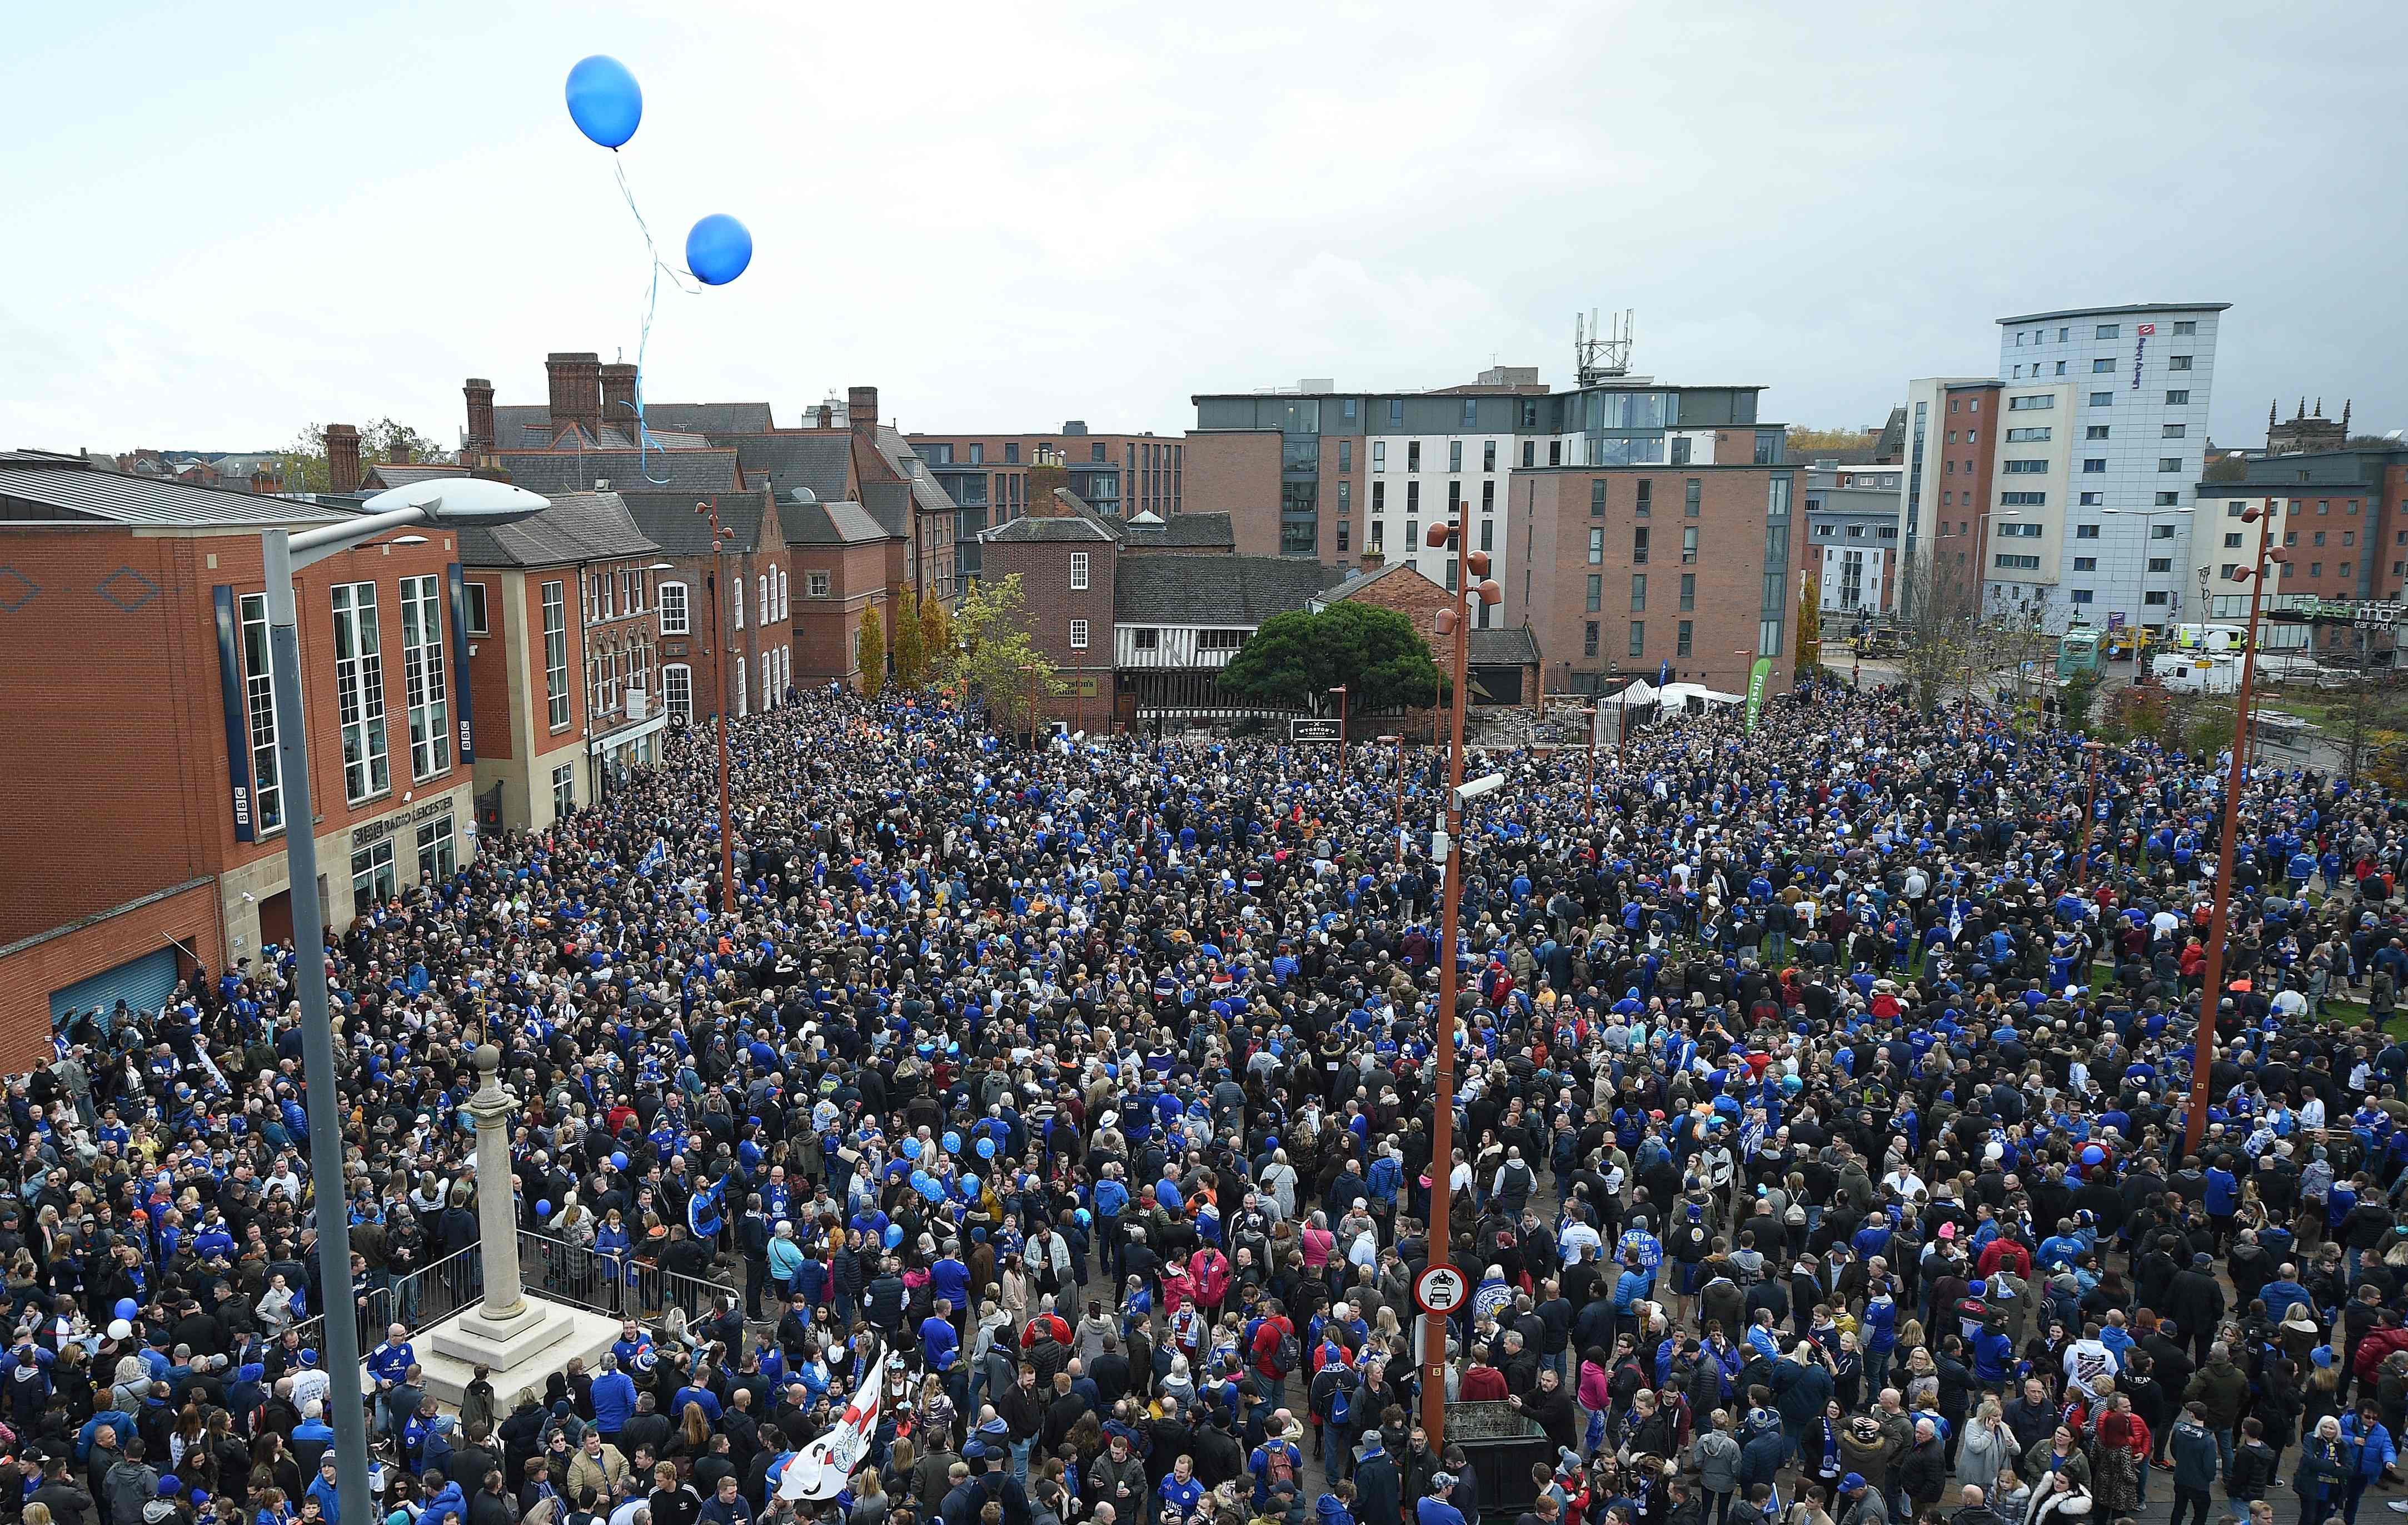 Just shy of the entire capacity of the King Power were present at the memorial walk